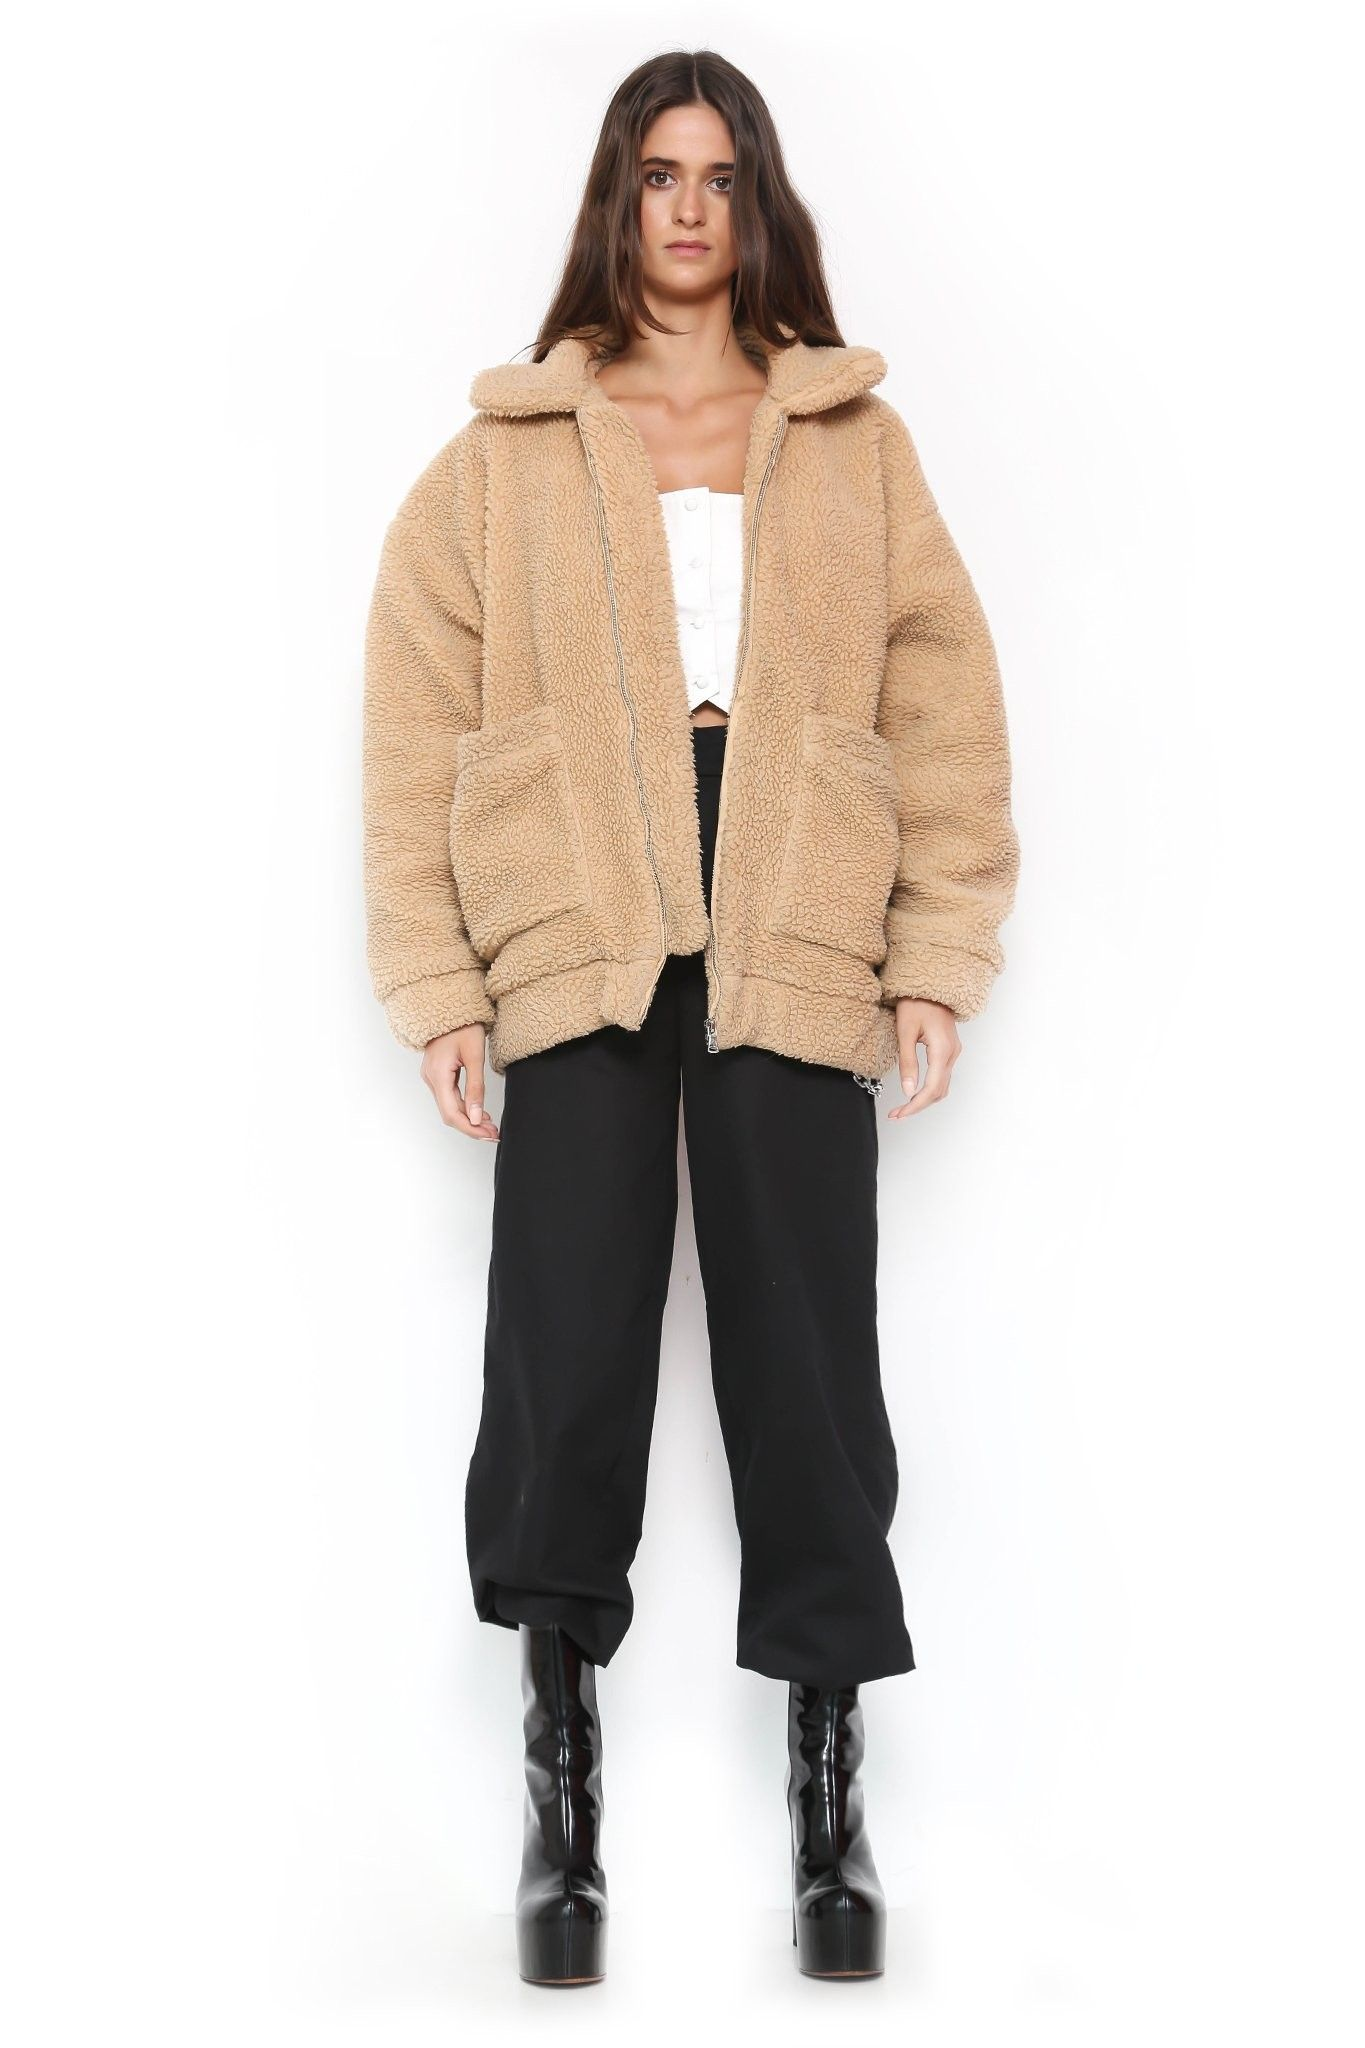 I AM GIA PIXIE COAT - CARAMEL  b92a7a31b